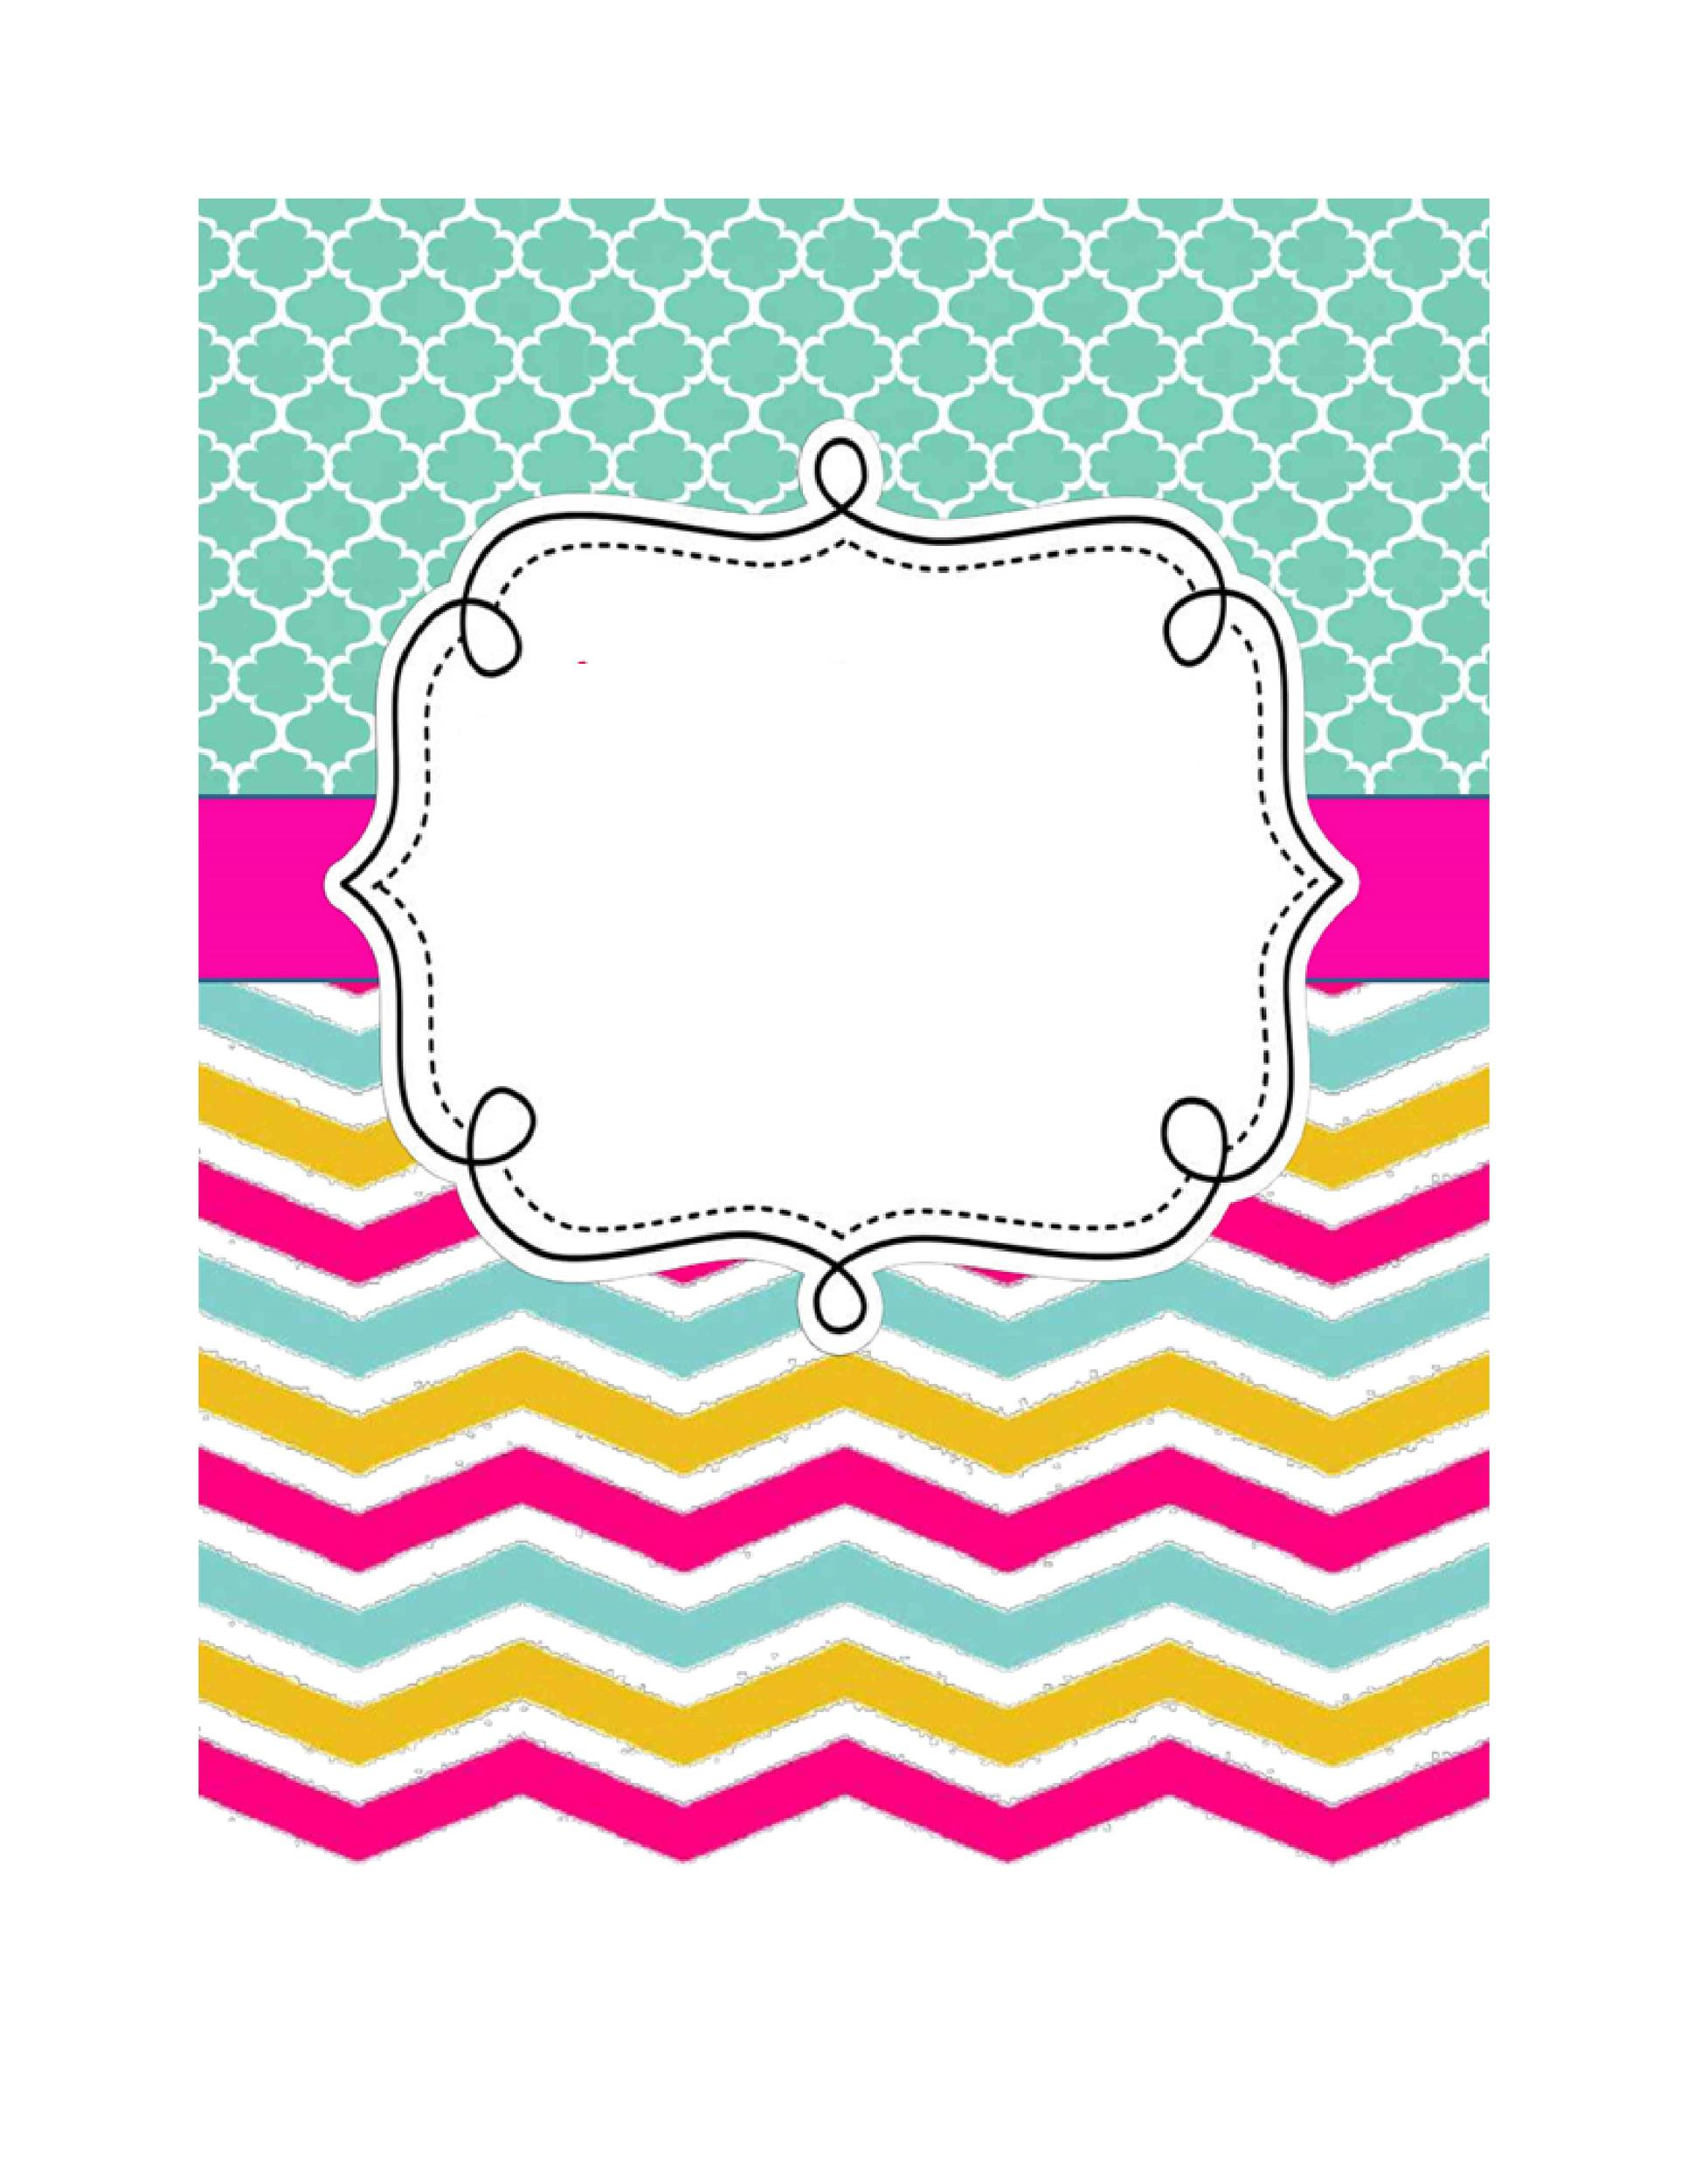 Geeky image with printable binder cover templates